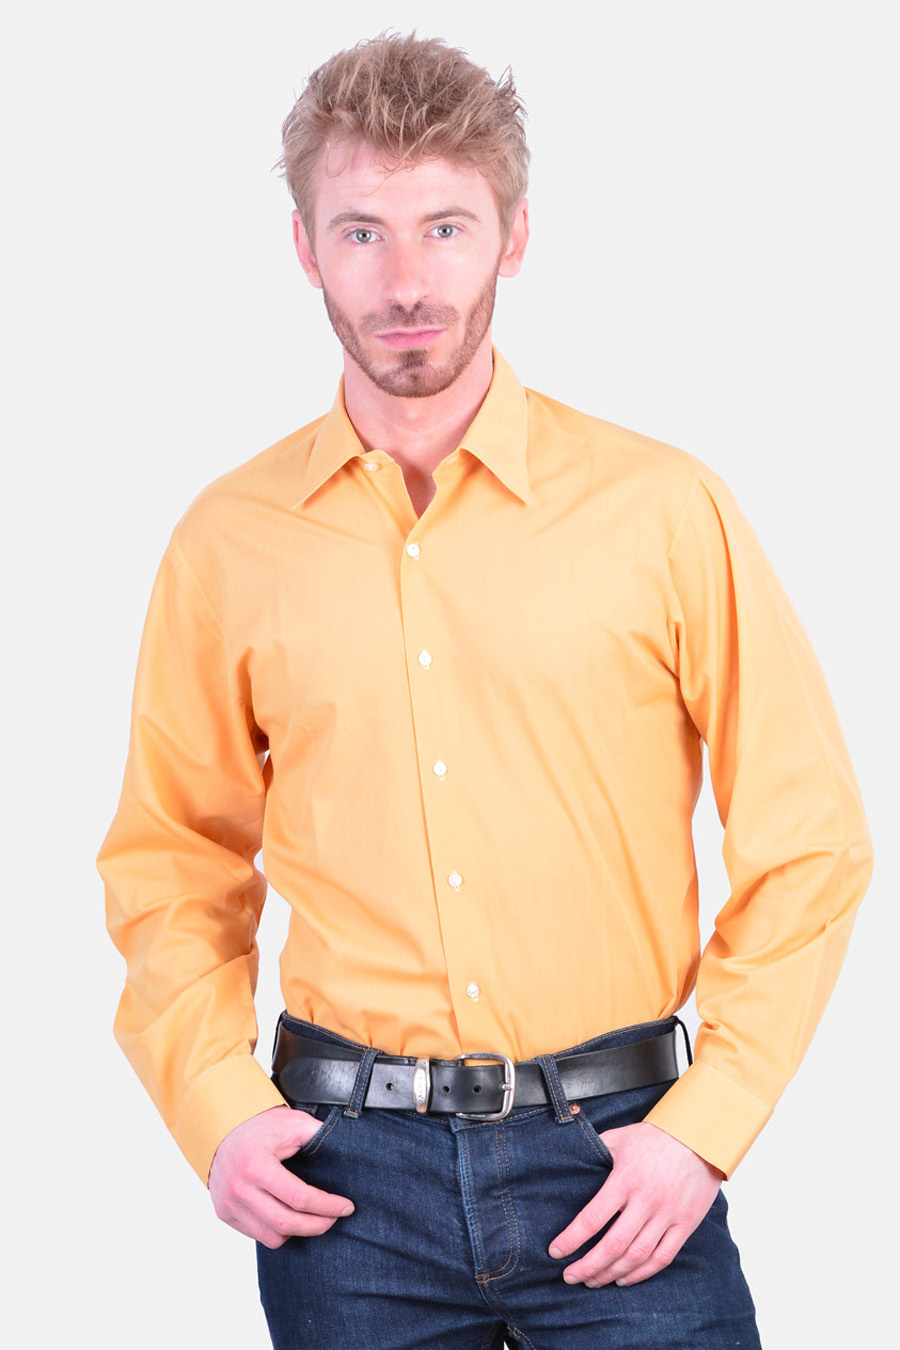 Vintage yellow shirt